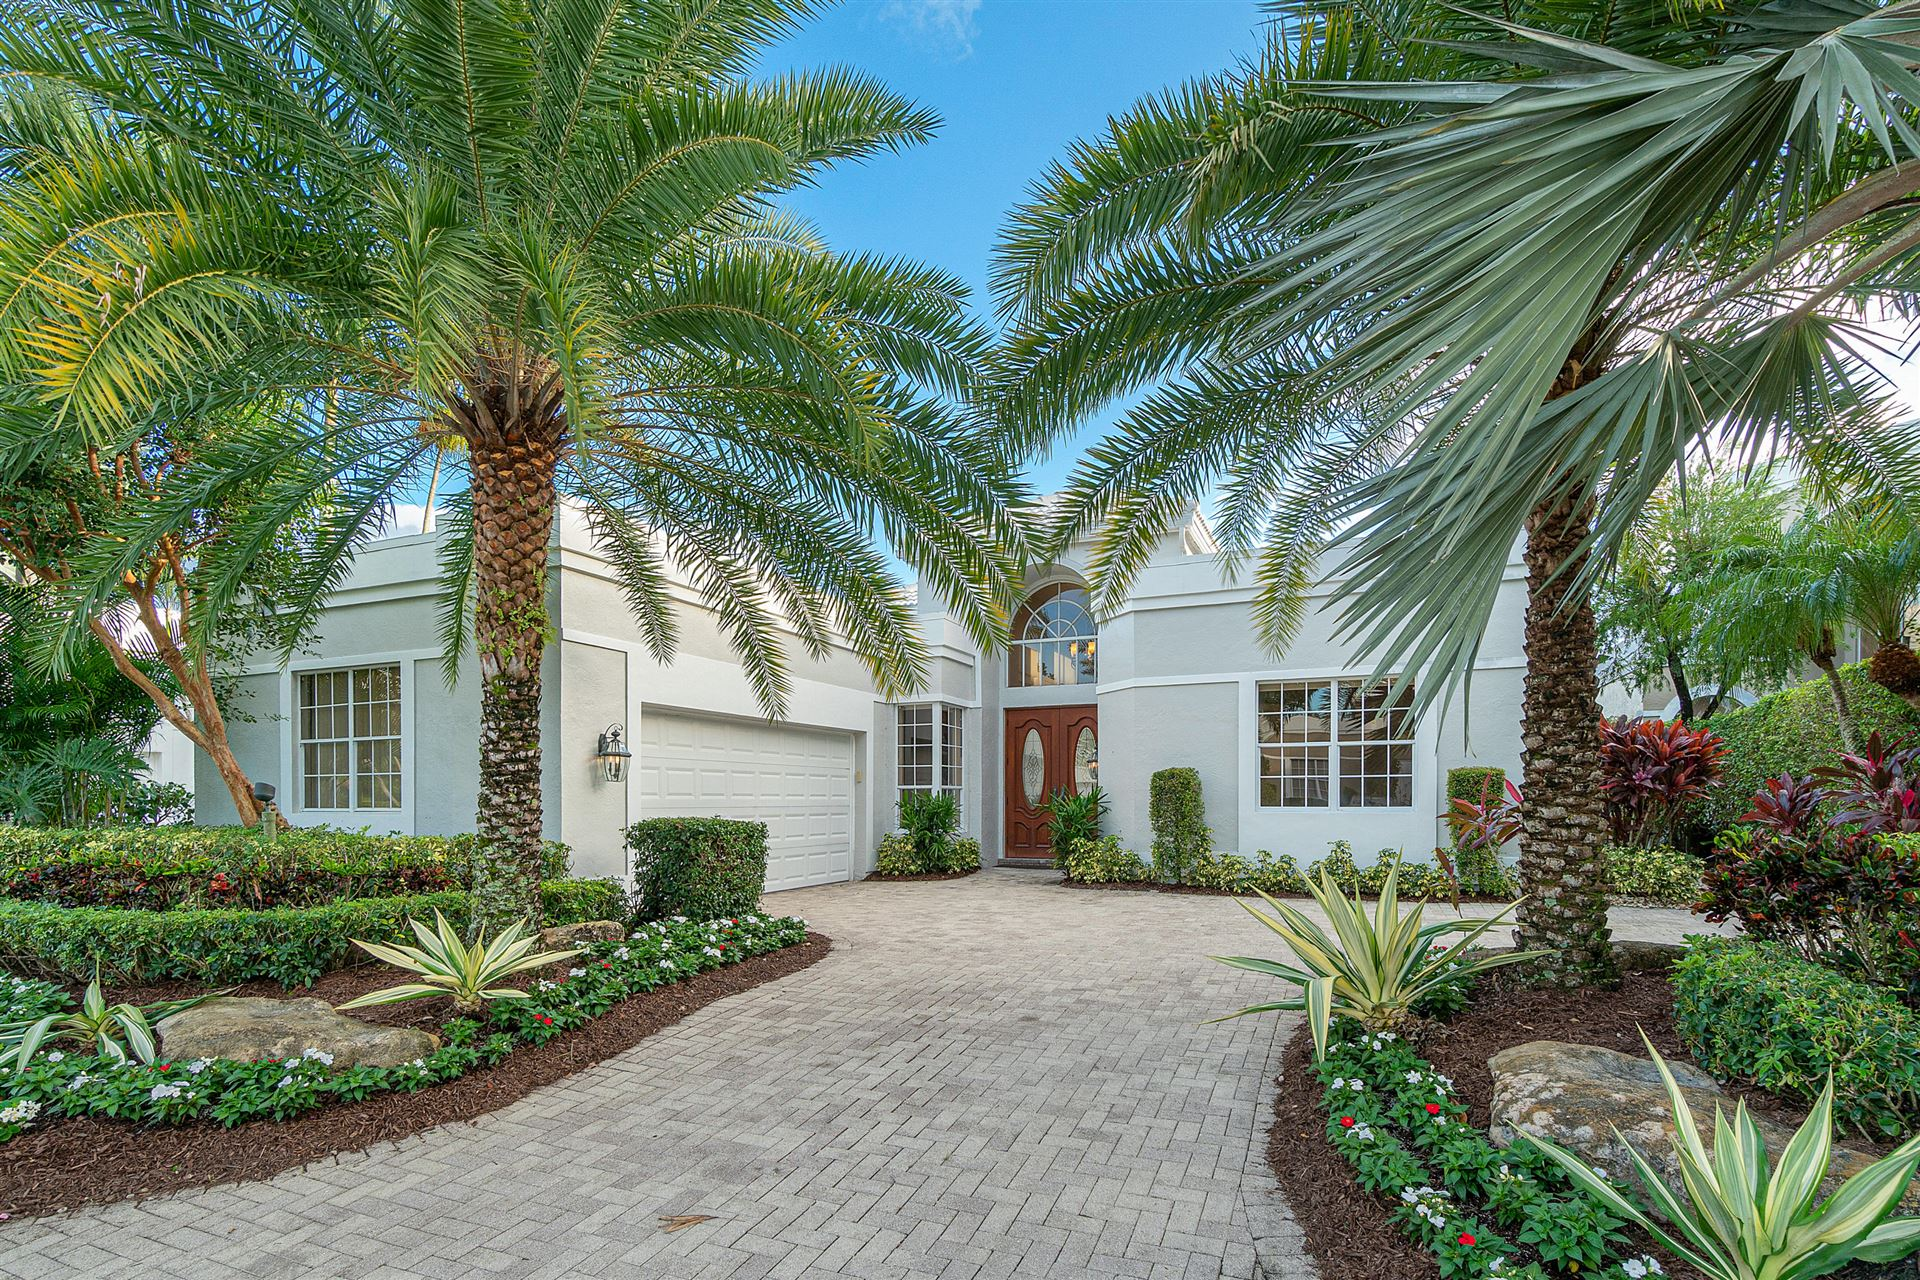 Photo of 5358 Ascot Bend, Boca Raton, FL 33496 (MLS # RX-10674470)